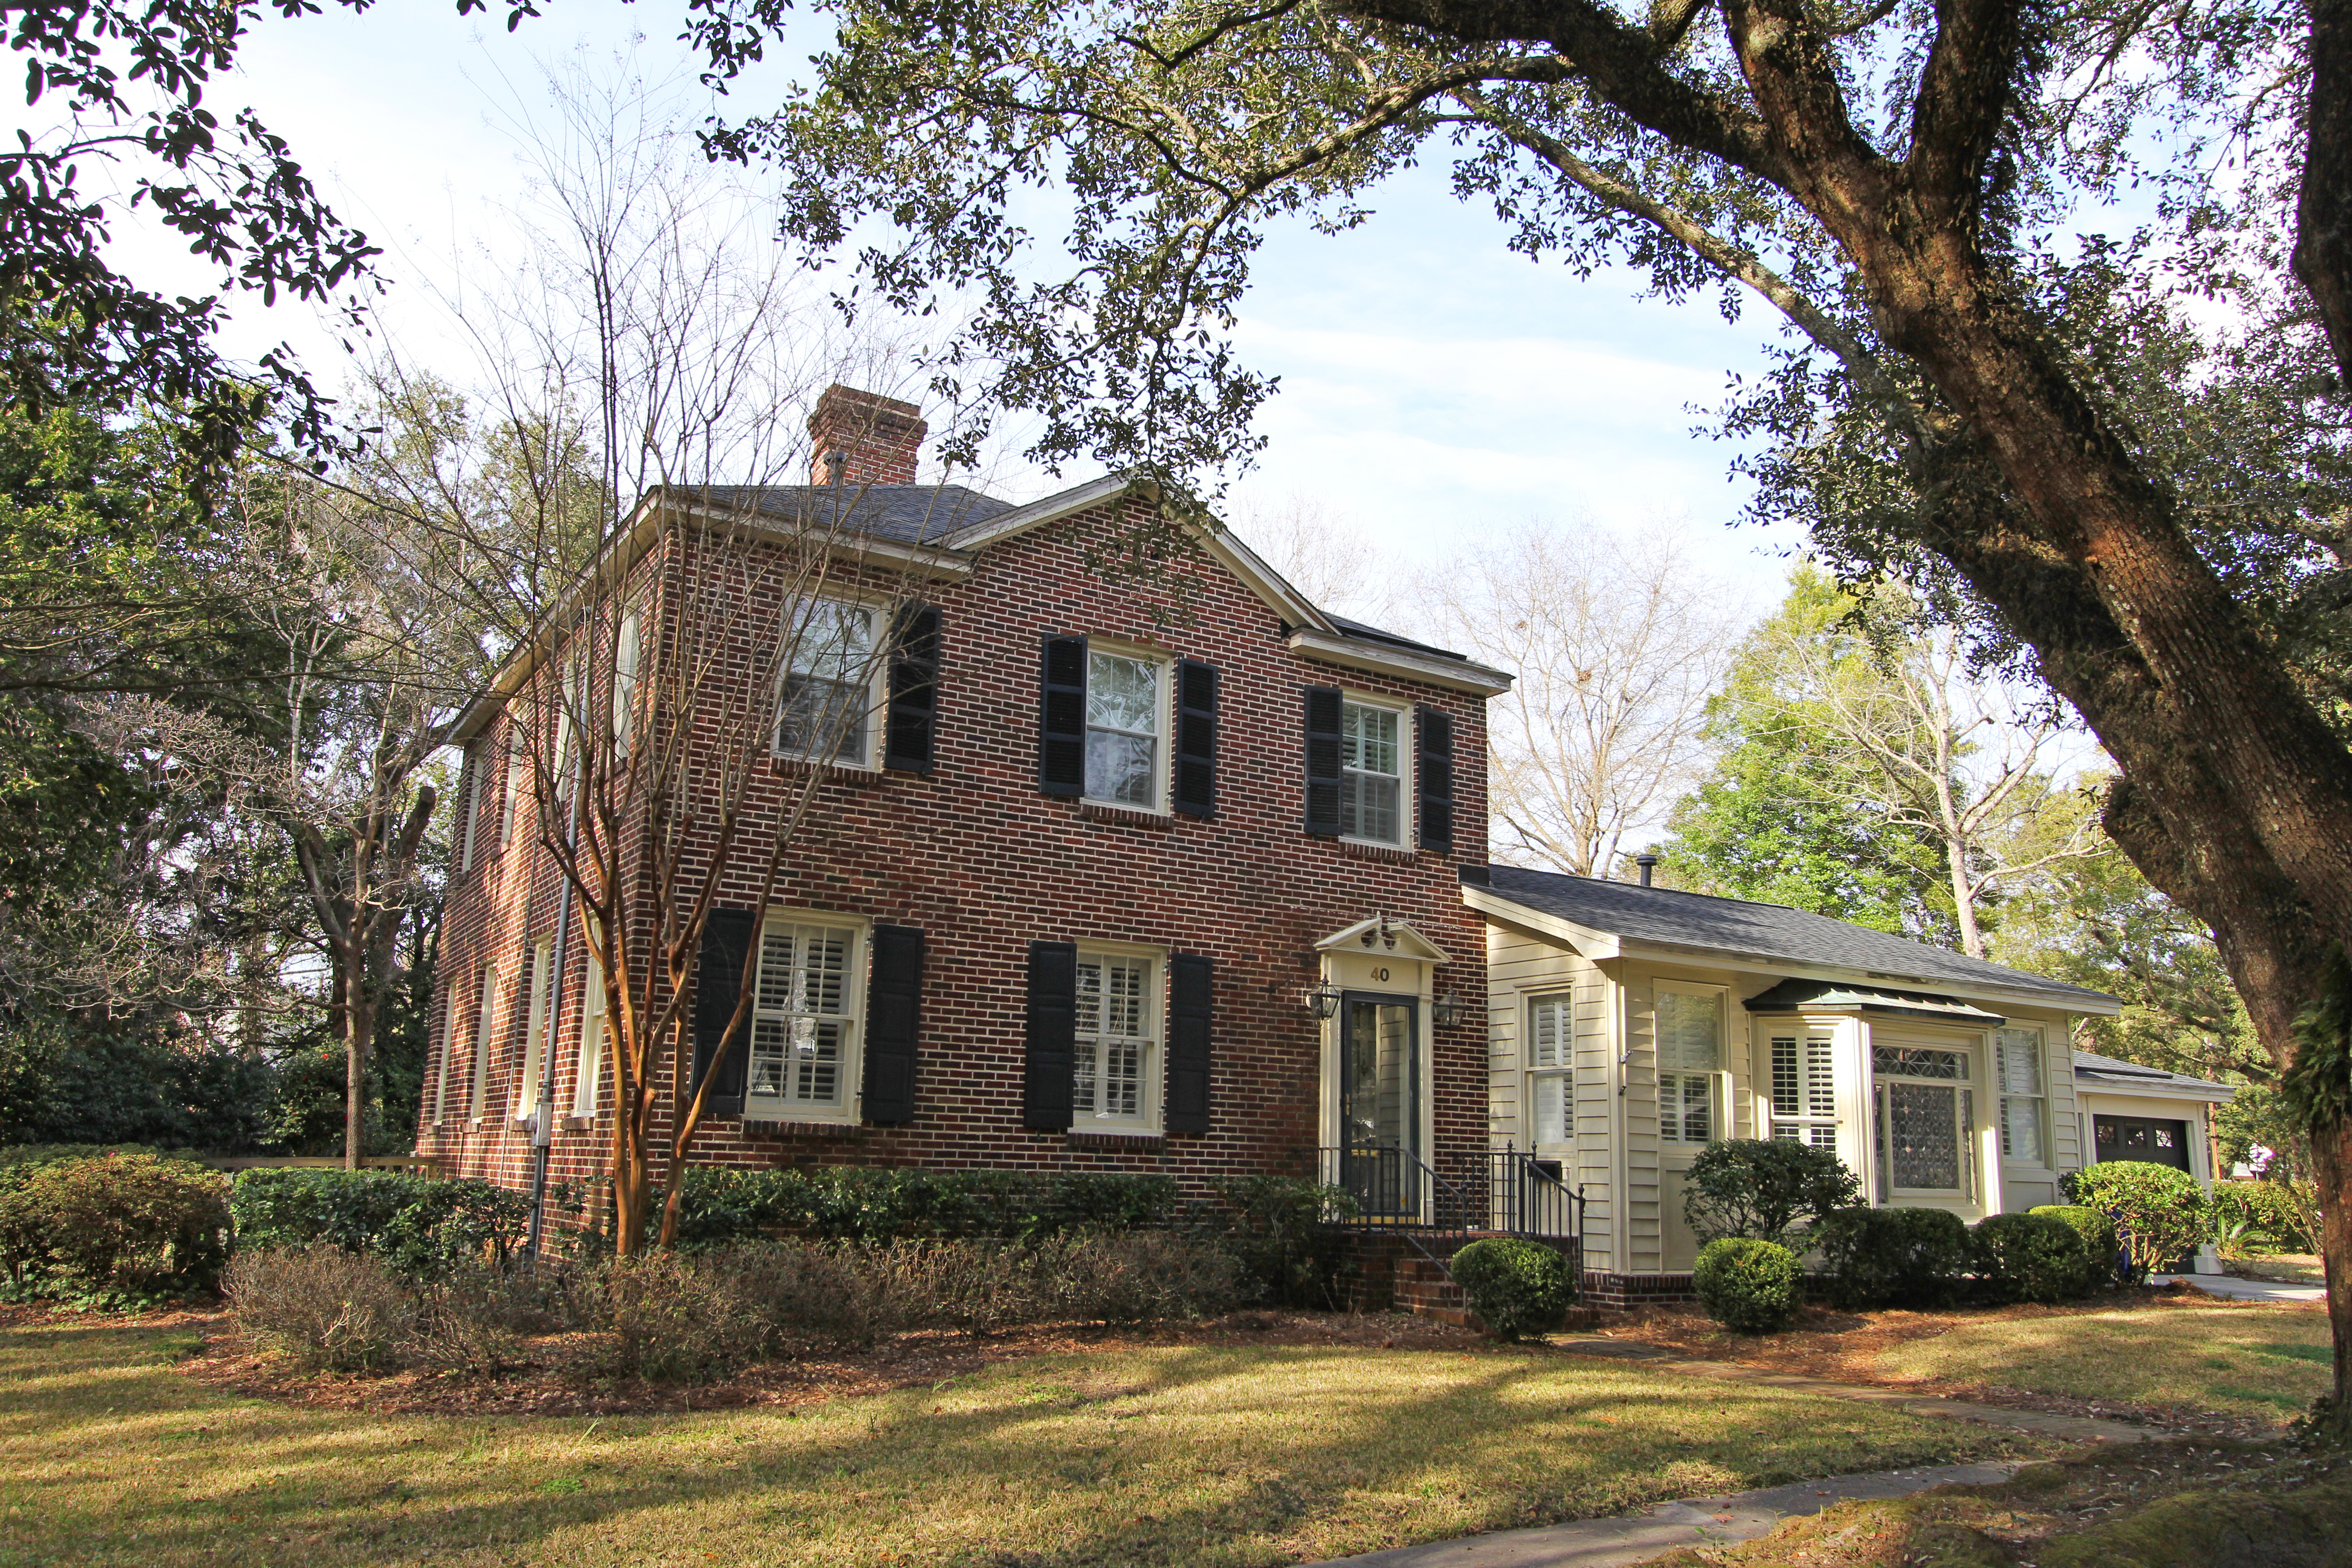 For Sale - Perfect West Ashley Homes - William Means